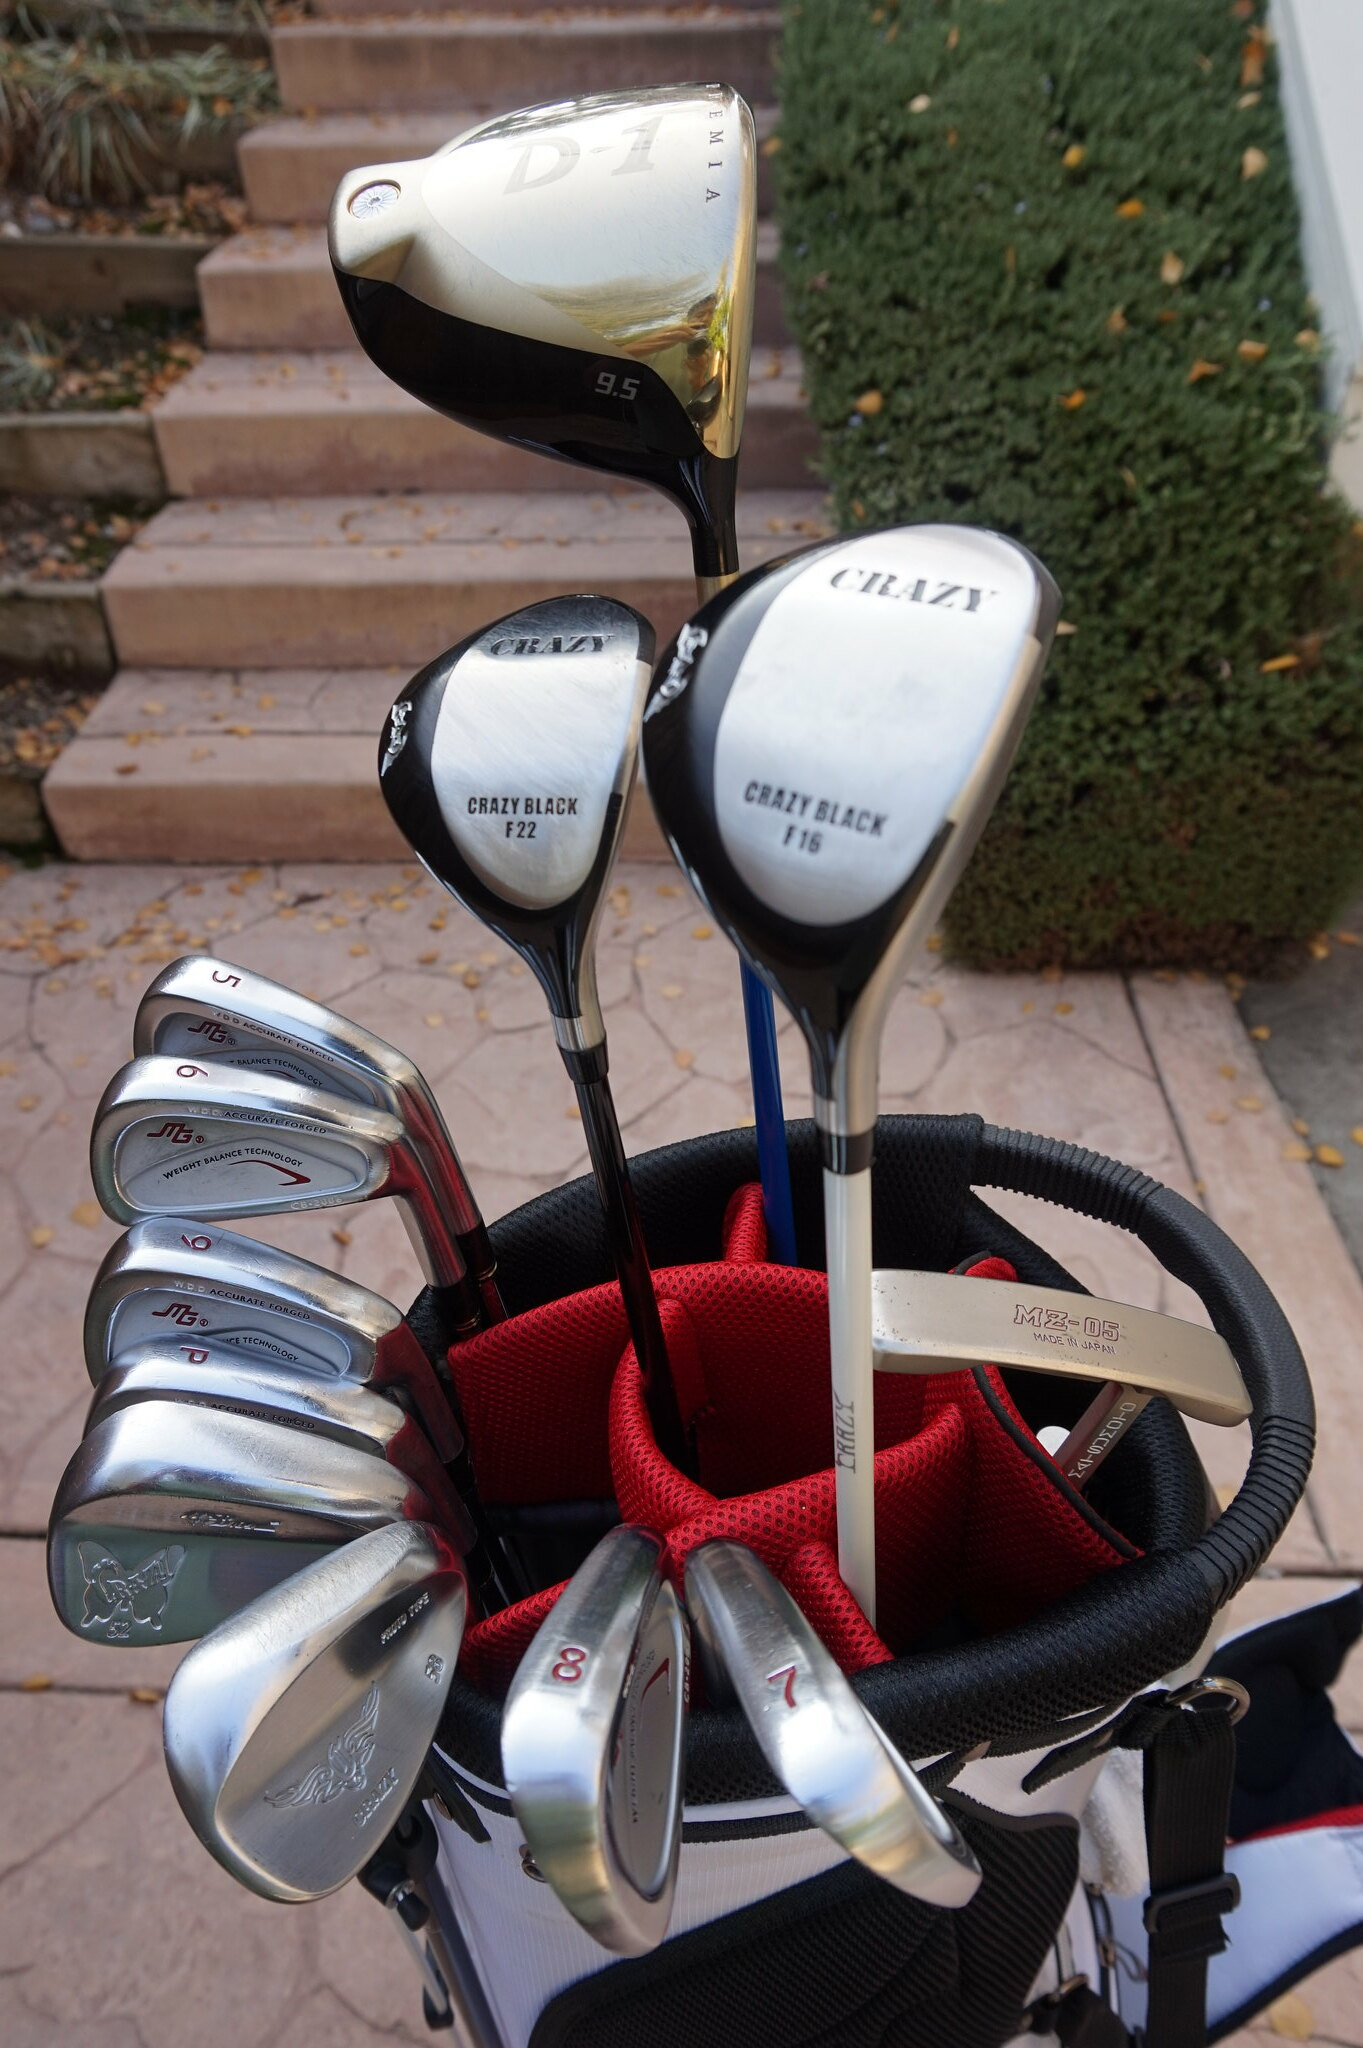 2015 Japanese Golf Clubs Recap What I Learned And Played Motgolf Spinner Iron Hiro Classics Bag B